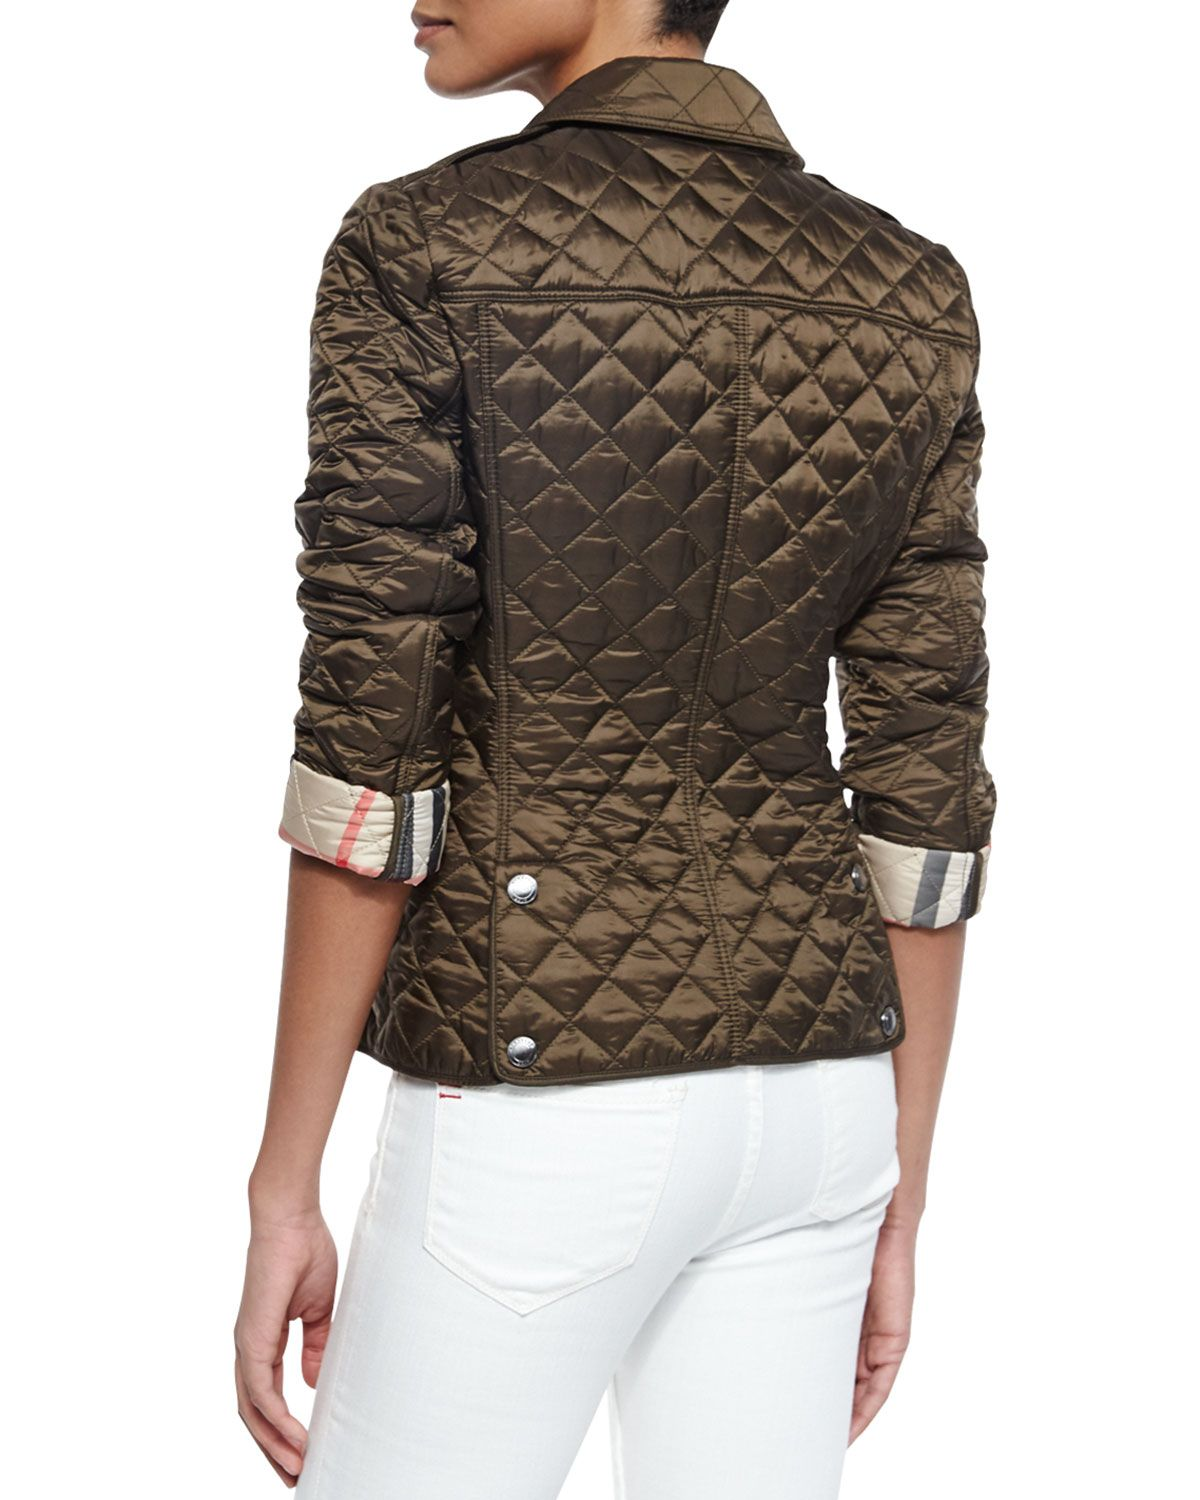 Burberry Brit Diamond Quilted Jacket Olive Jackets